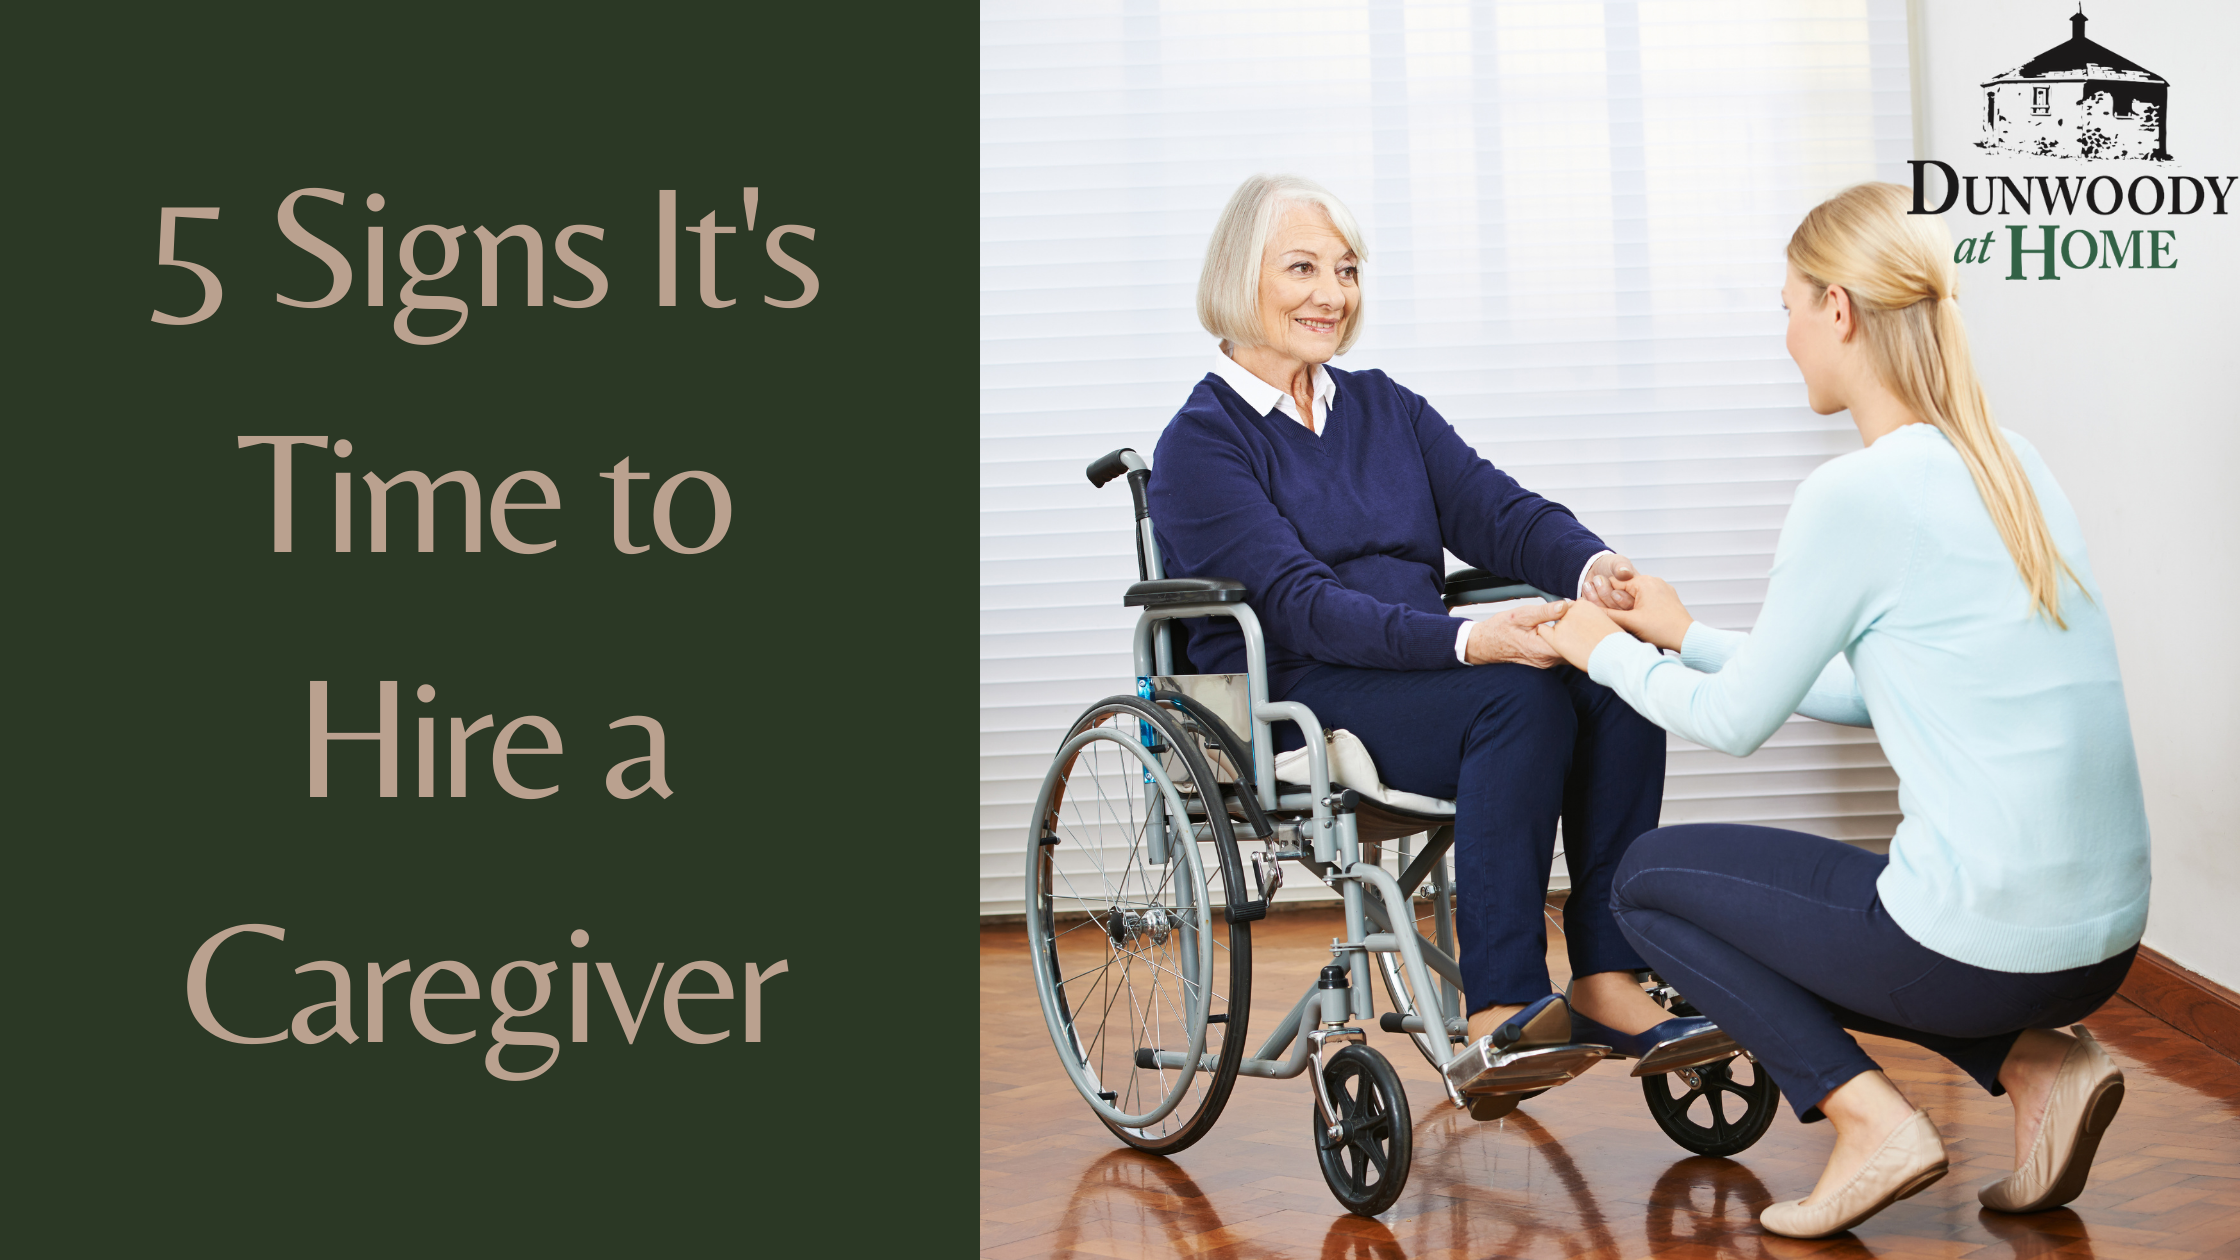 Dunwoody at home caregiver services and senior helpers